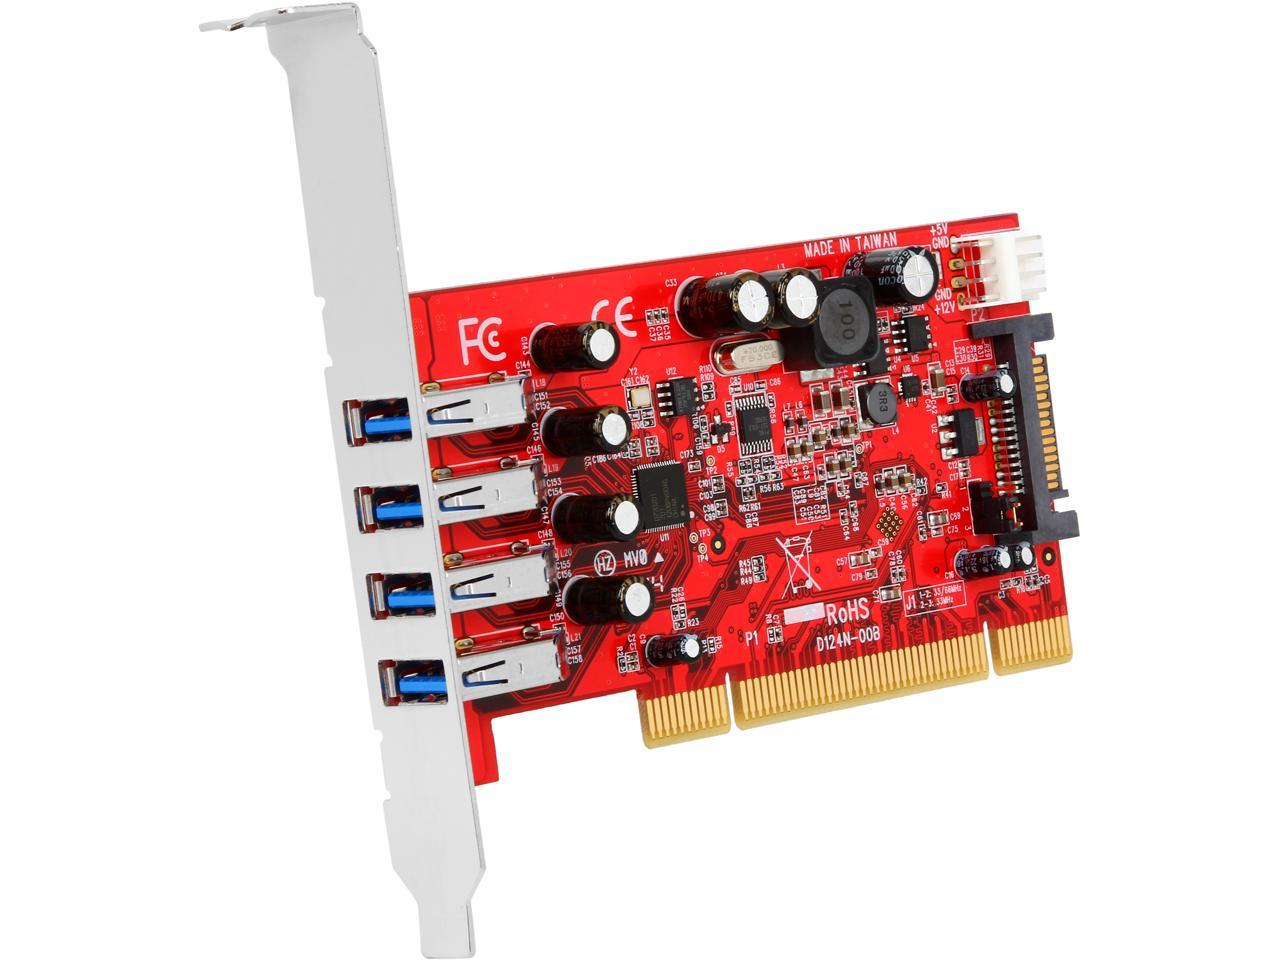 NAS-Plug and Play on Windows FebSmart 4-Ports PCI Express to 6Gbps SATA 3.0 Expansion Card for PCs FS-S4-Pro Servers MAC OS and Linux System-Marvell 88SE9215 Non-Raid PCIE SATA Controller